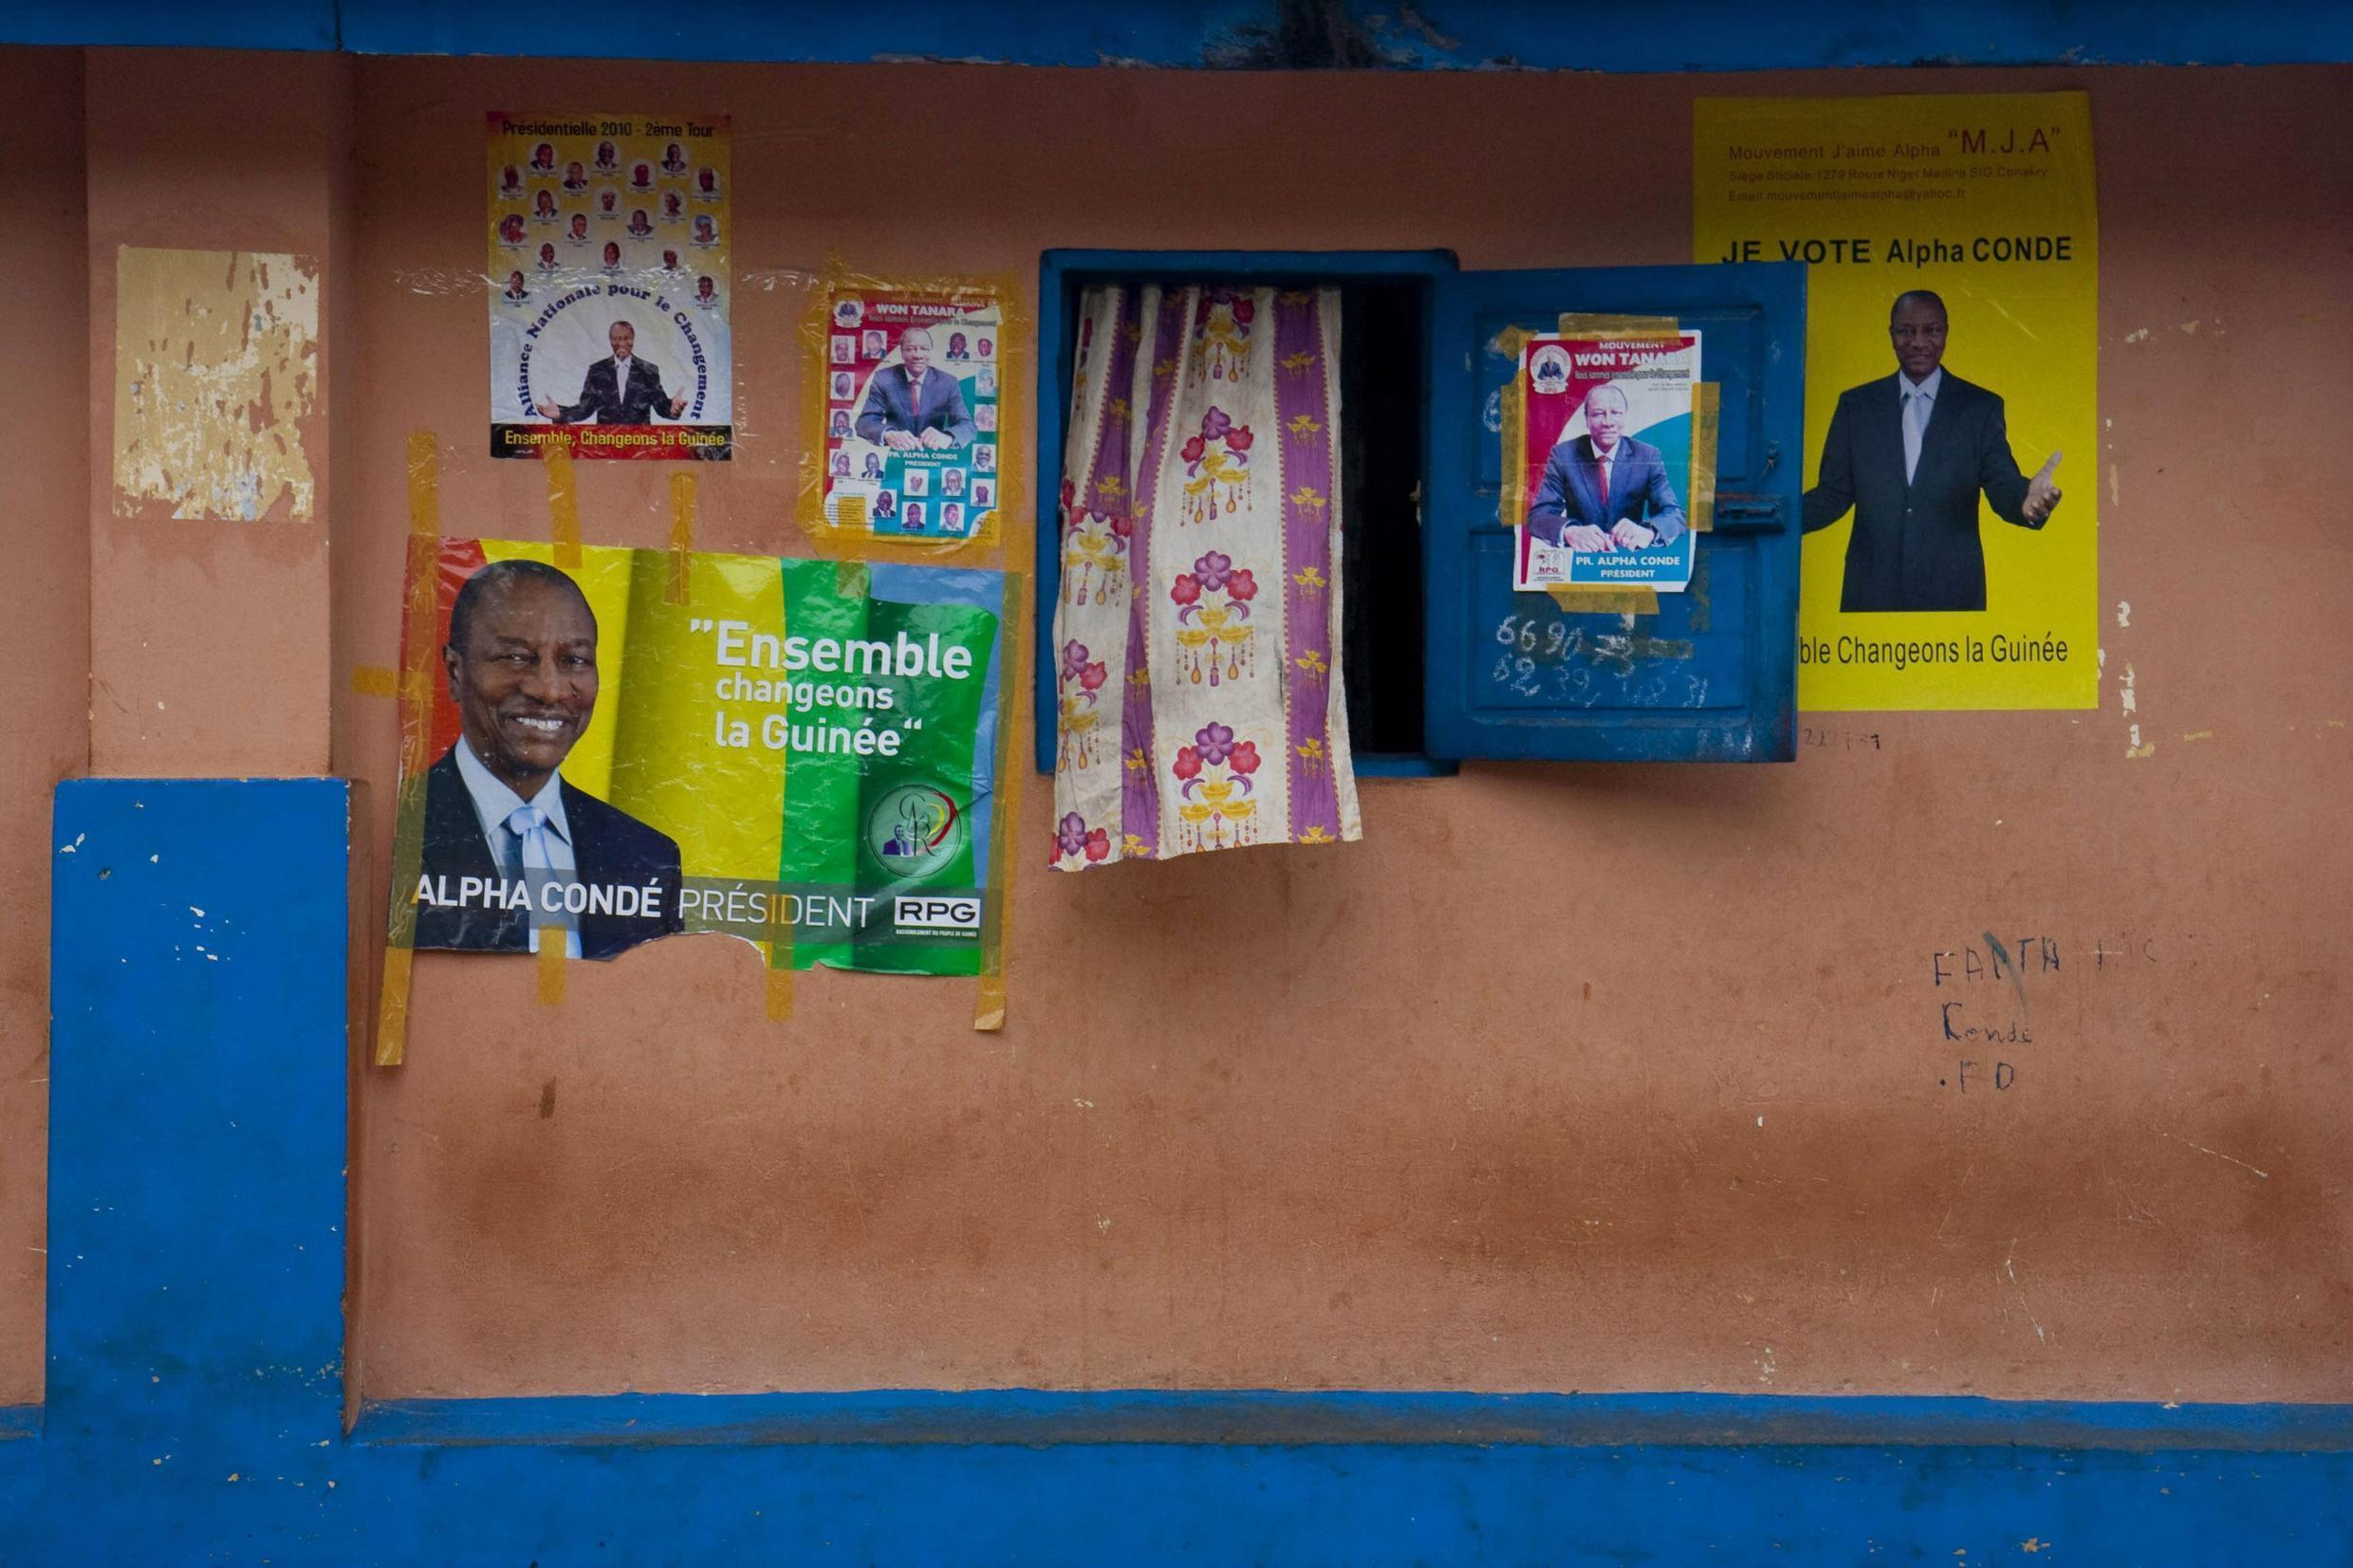 Posters for Guinea's presidential candidates outside a home in downtown Conakry, the capital